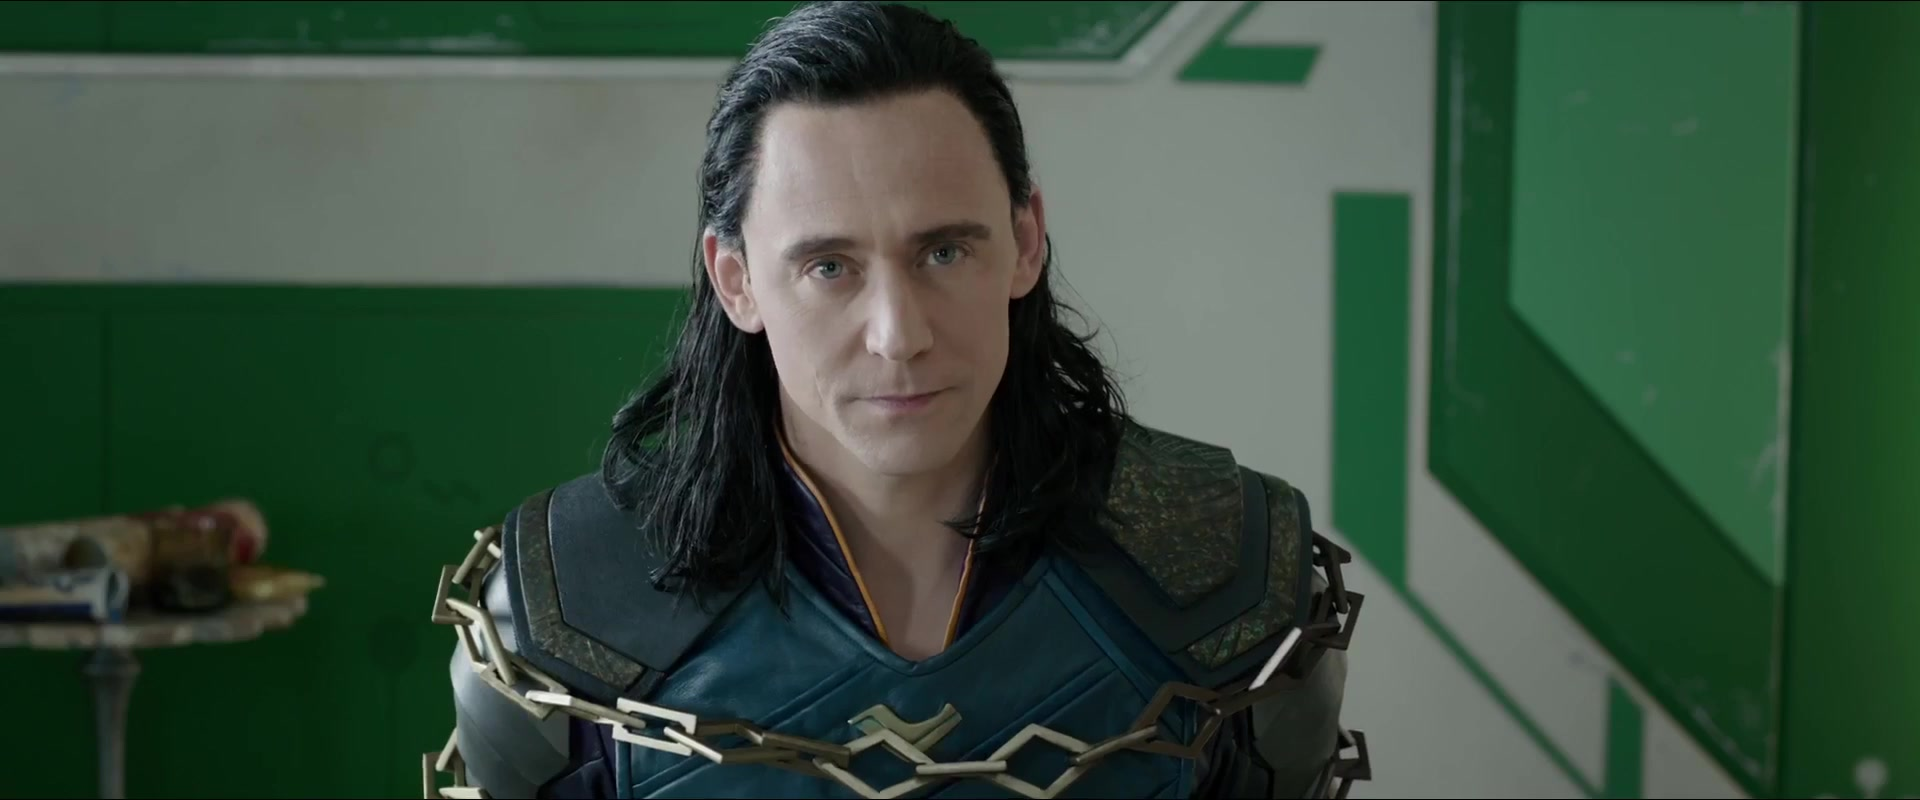 (Thor: Ragnarok) Tom Explains the Relationship Between Thor and Loki